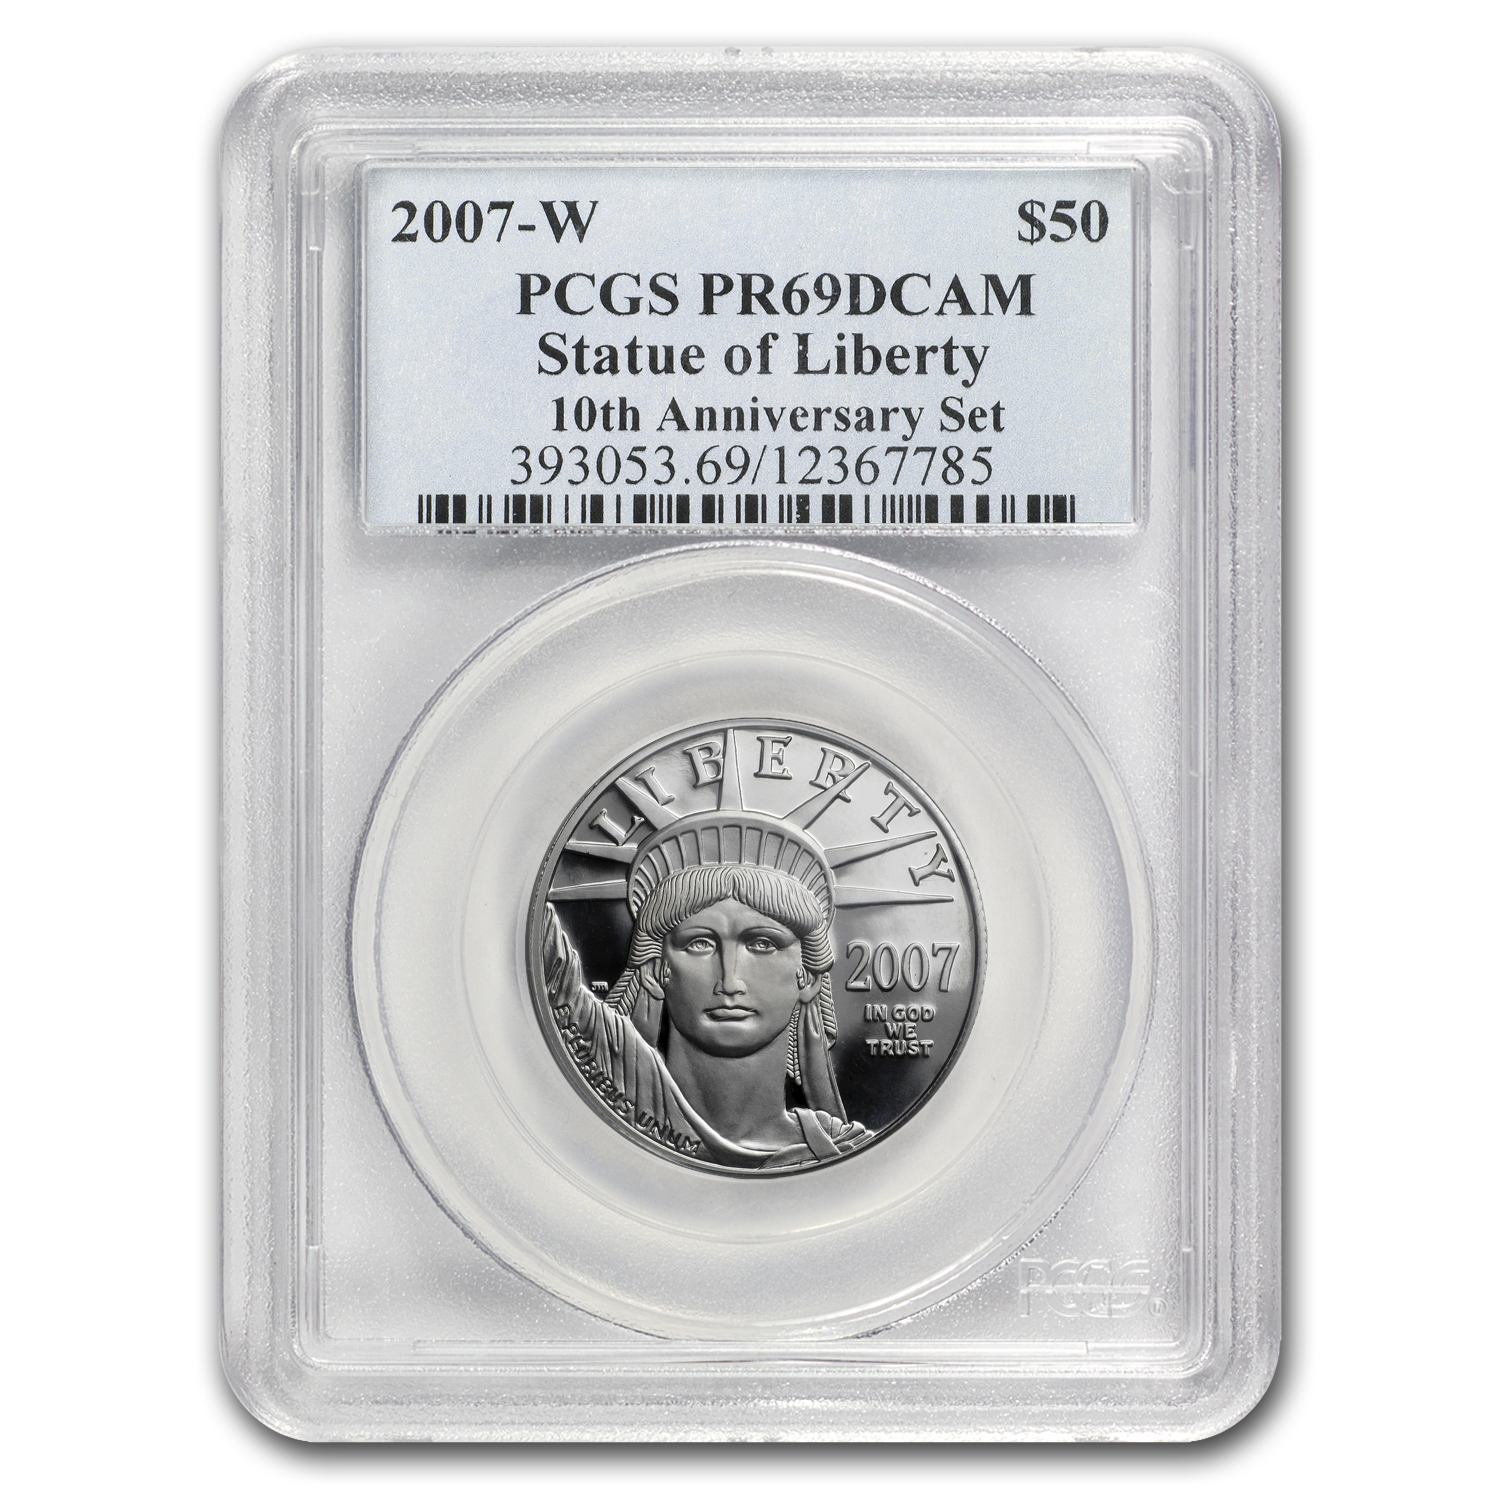 2007-W 1/2 oz Proof Platinum American Eagle PR-69 PCGS